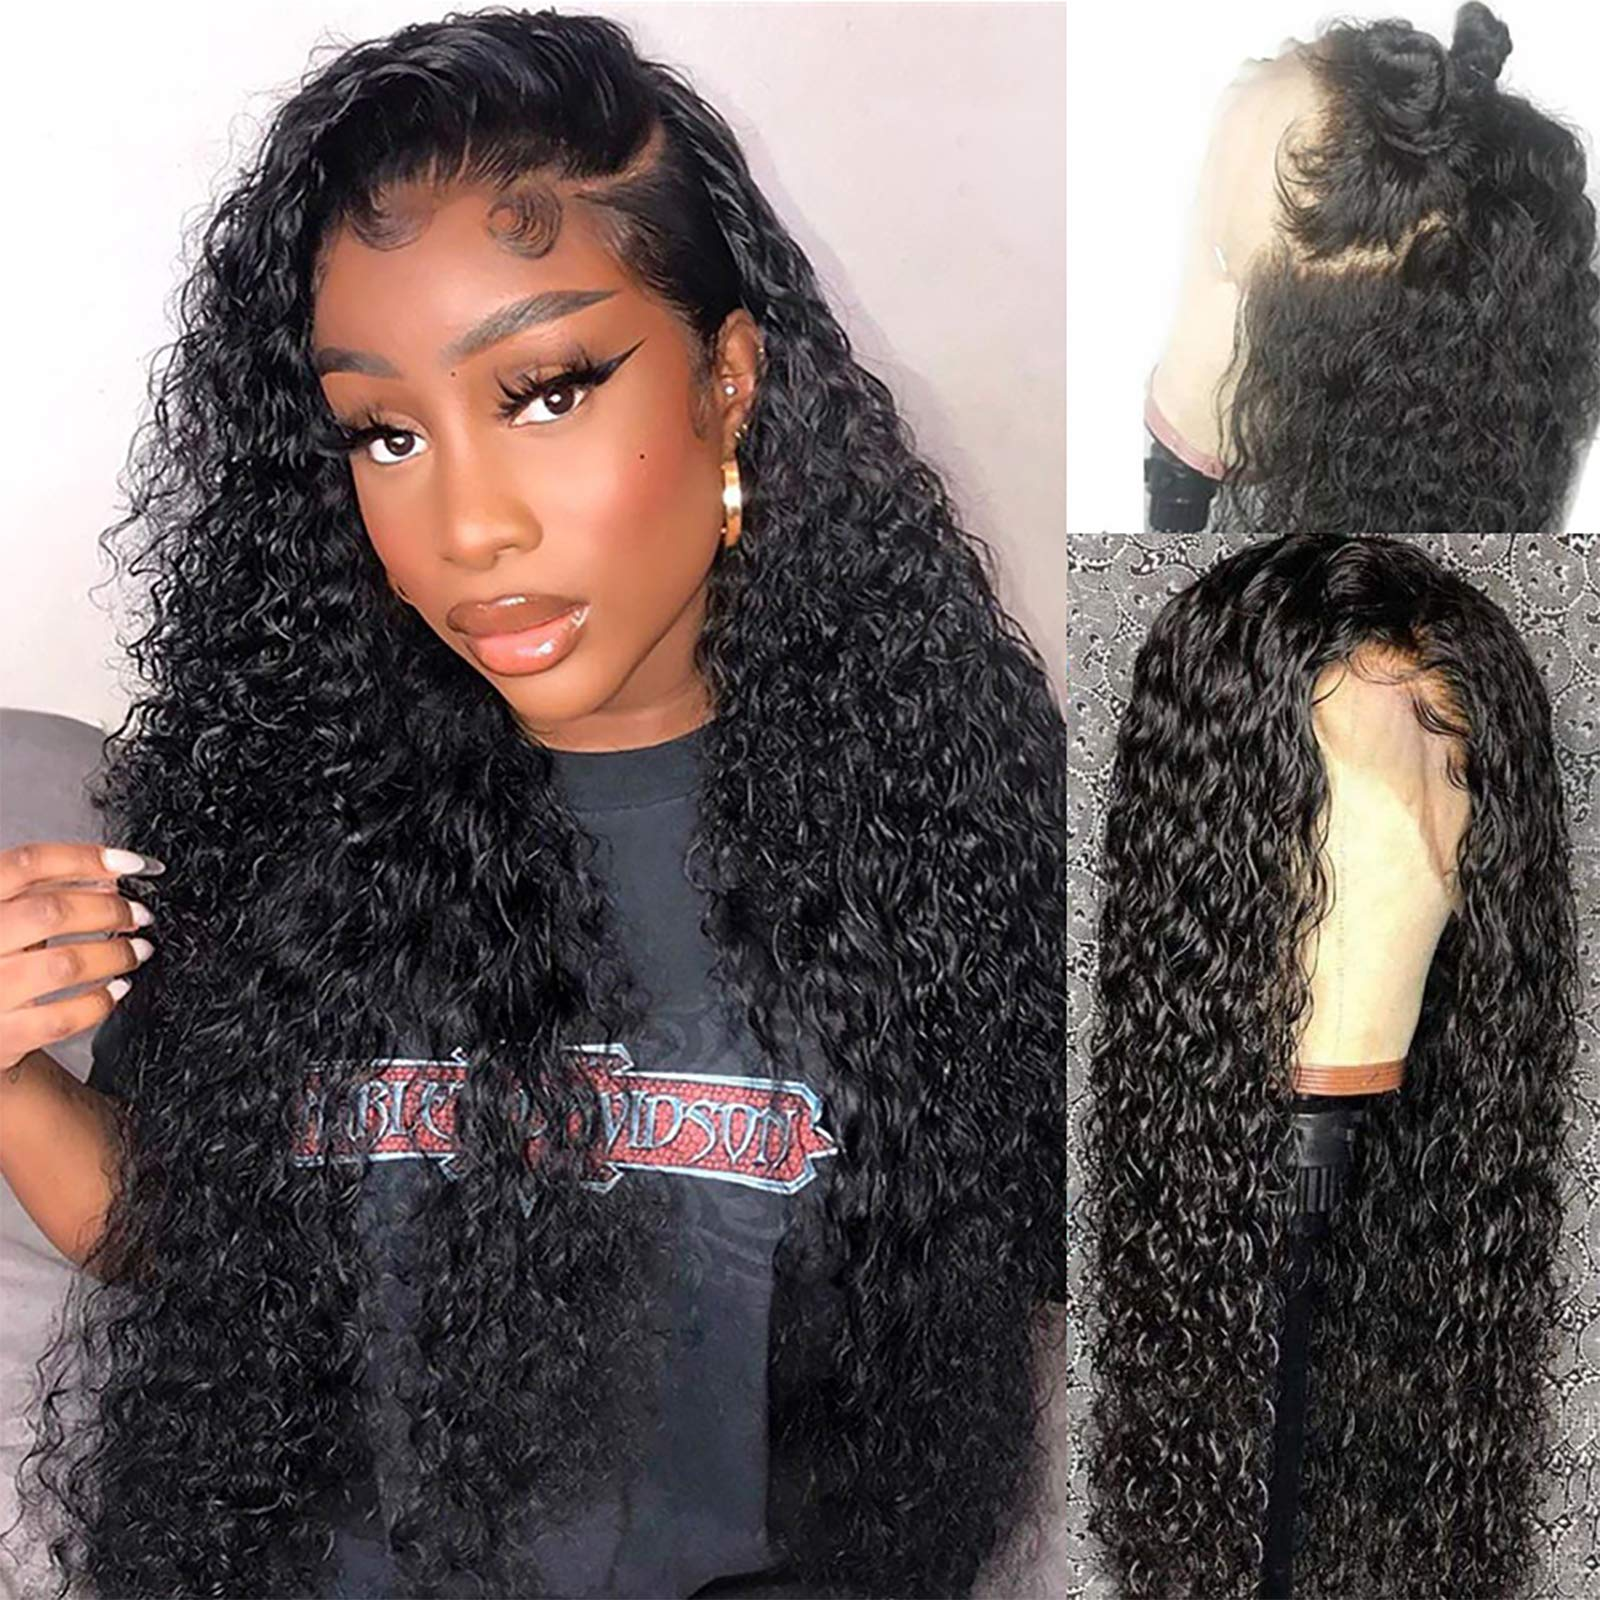 Water Wave Lace Front Wigs Human Hair Original Queen 150% Density Brazilian 4X4 Lace Closure Wigs Human Hair Wigs for Black Women Deep Curly Hair Wigs Natural Color 16Inch